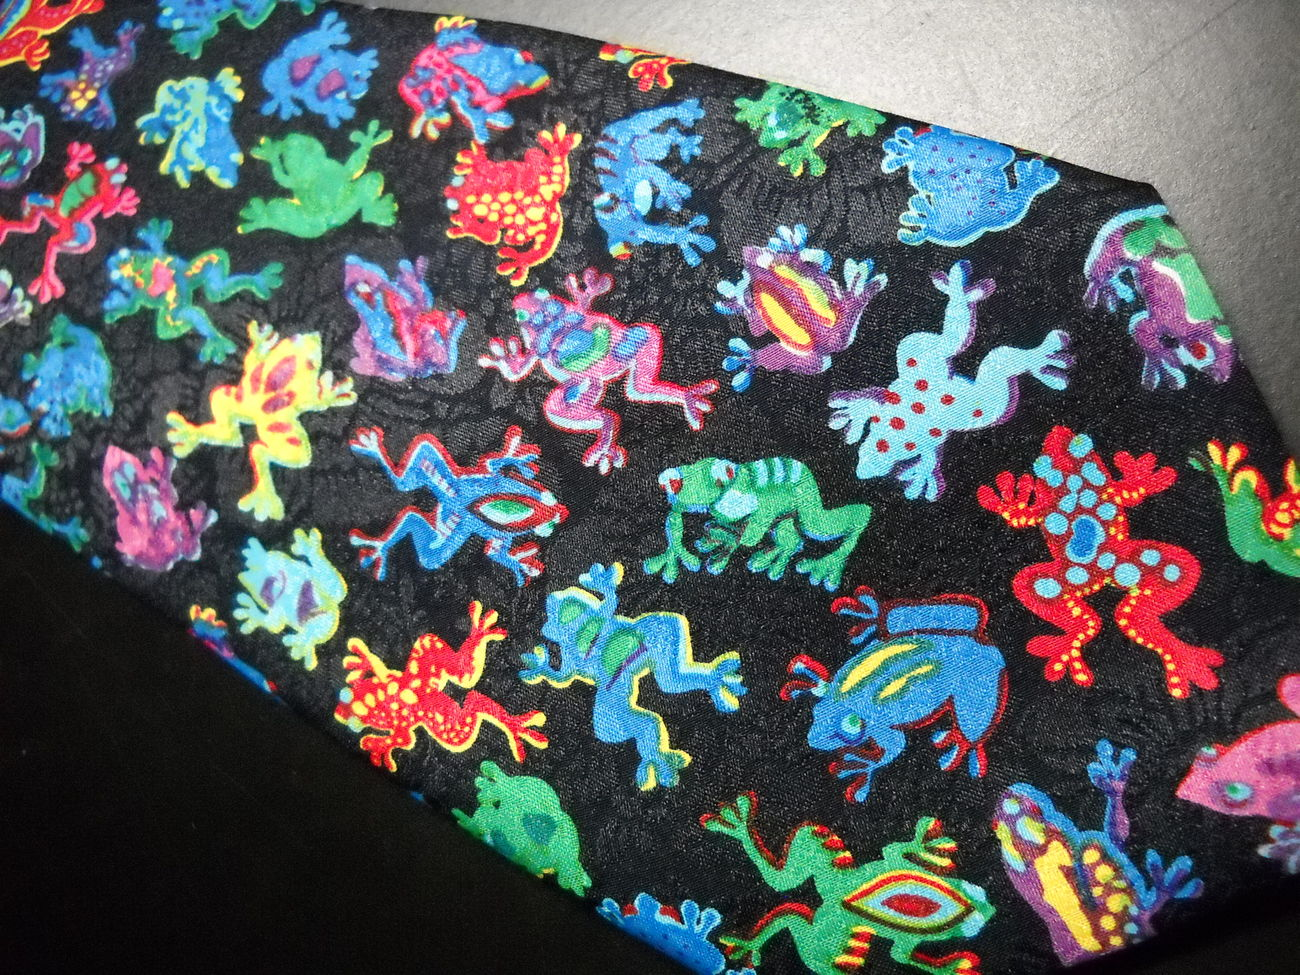 A Rogers Neck Tie Frogs Multiples of Brightly Colored Frogs on Black Background